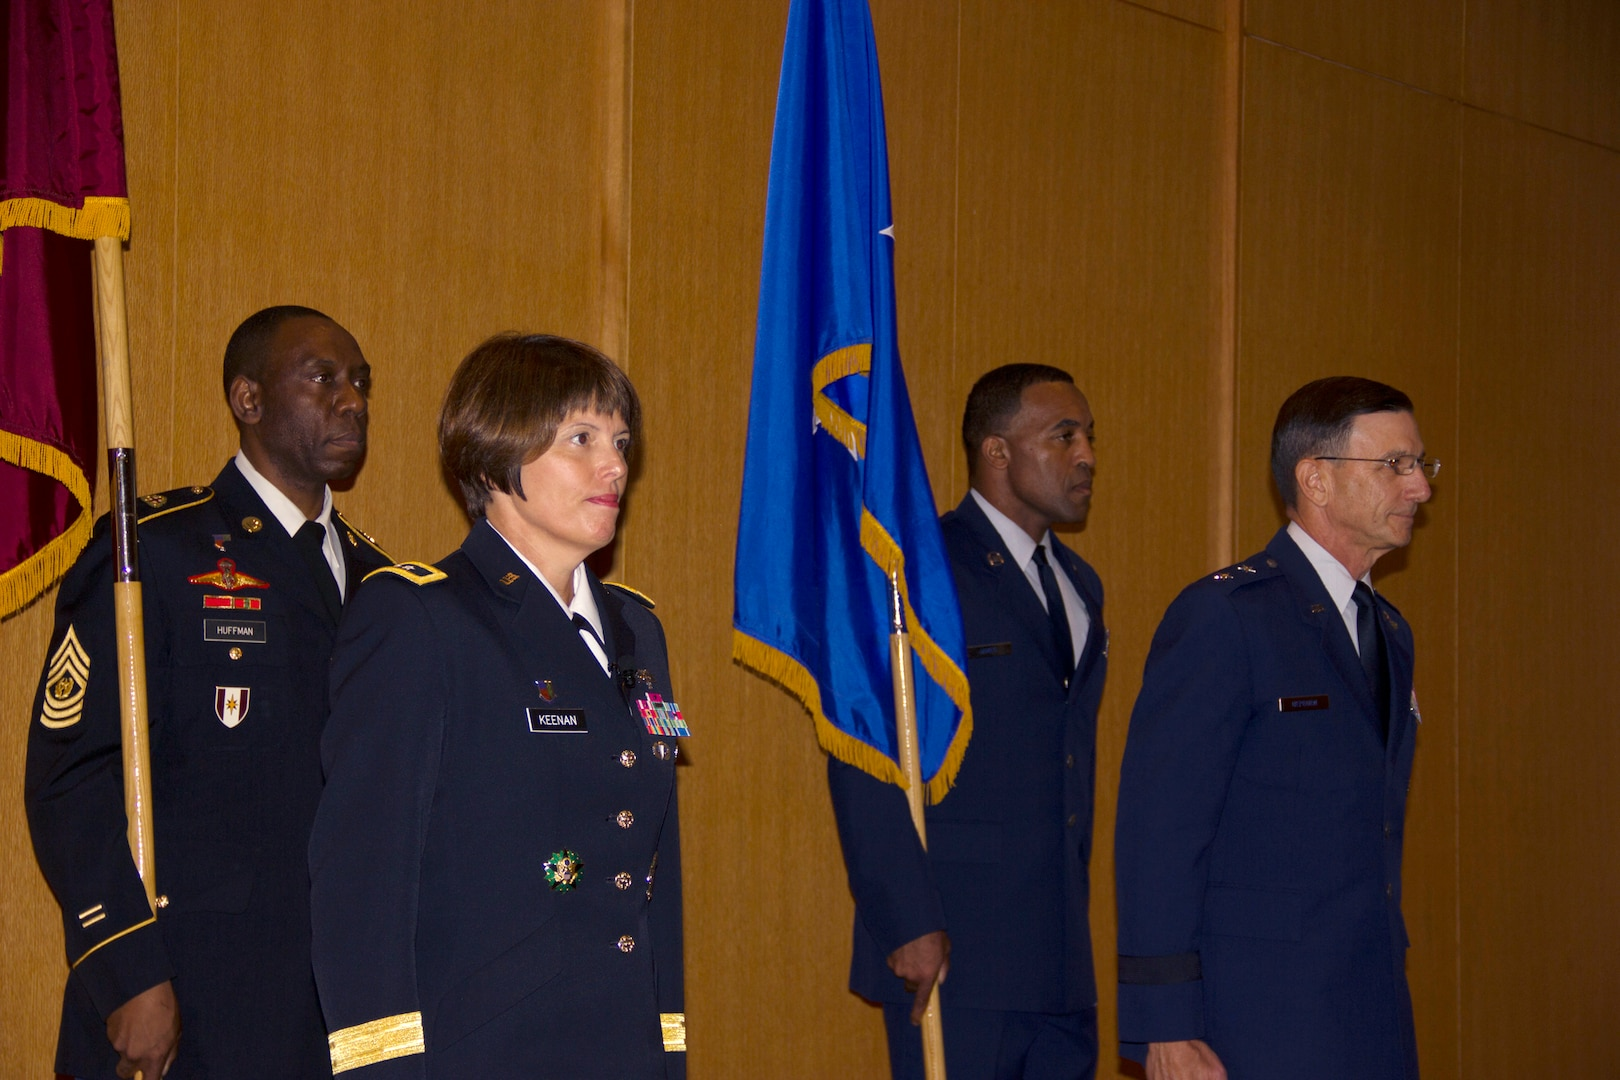 In a ceremony held at San Antonio Military Medical Center, Army Maj. Gen. Jimmie O. Keenan, front left, assumed authority as the director of the San Antonio Military Health System from Air Force Maj. Gen. Byron C. Hepburn, front right, who will now serve as the deputy director. During the transfer of authority, the senior enlisted advisors, Army Command Sergeant Major Marshall L. Huffman, back left, and Air Force Chief Master Sergeant Maurice A. James, back right, follow the generals as they trade places, symbolically marking the transfer of leadership from Air Force to Army.  (U.S. Army photo by Erin Perez/Released)